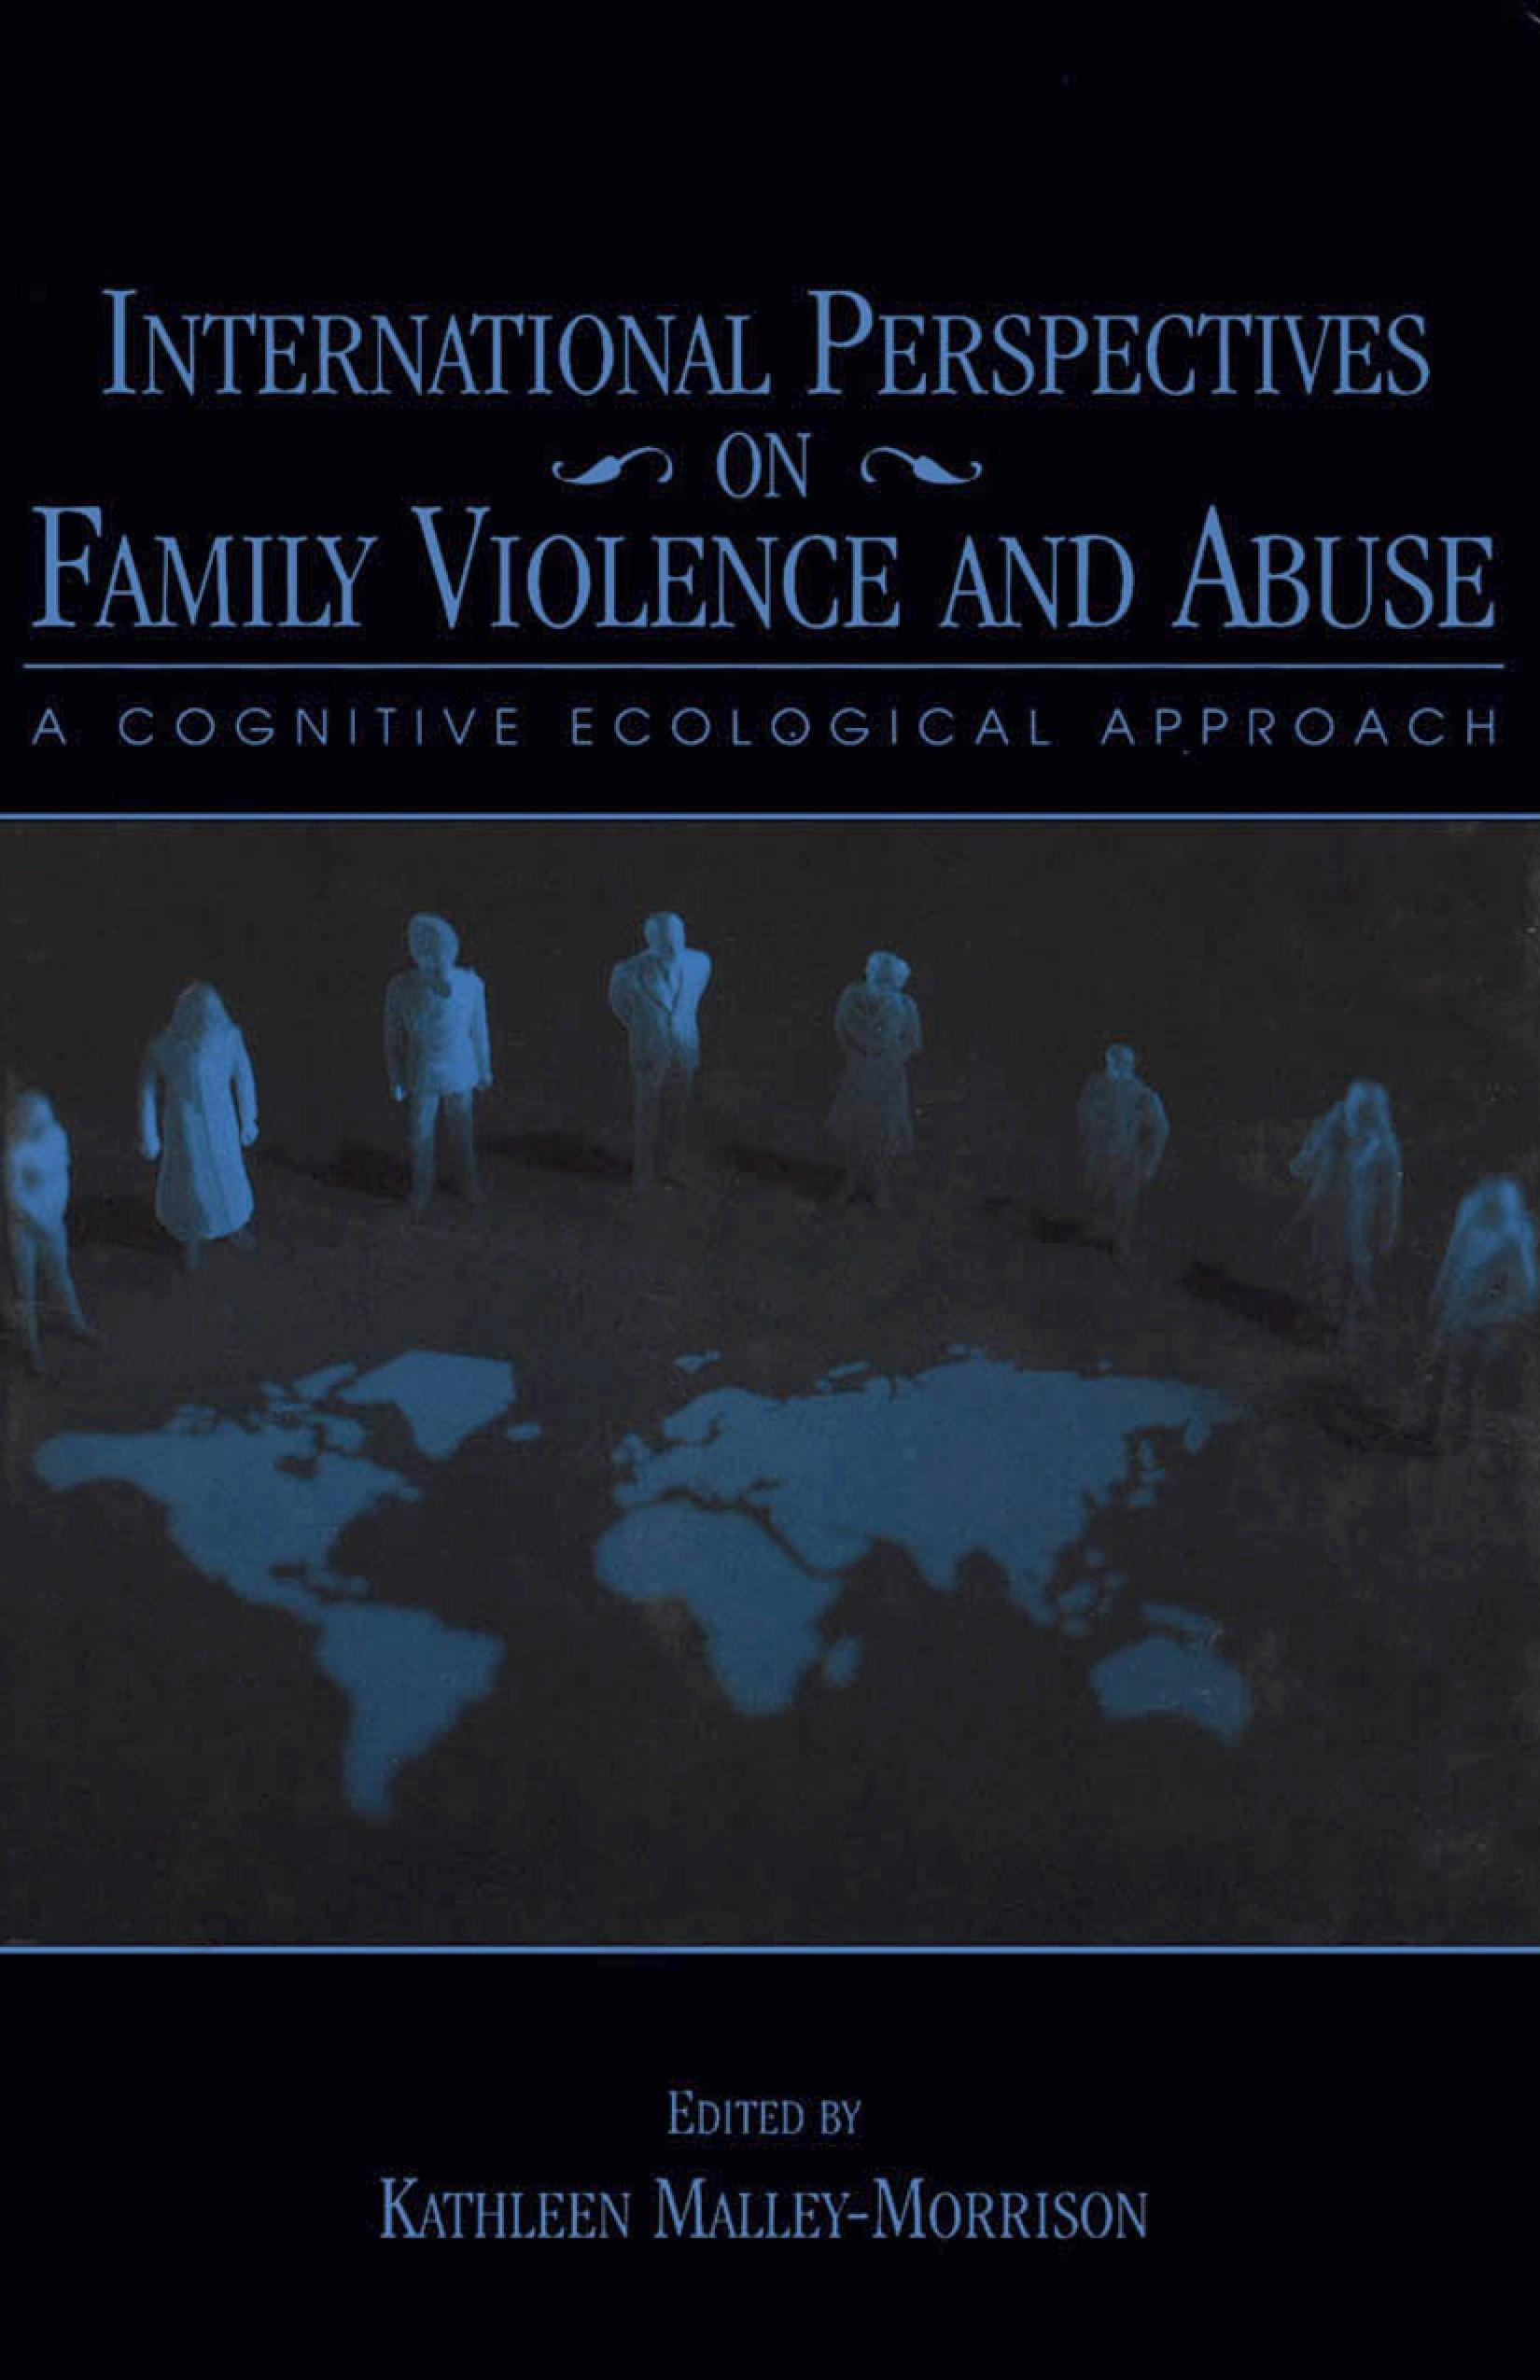 International Perspectives on Family Violence and Abuse: A Cognitive Ecological Approach